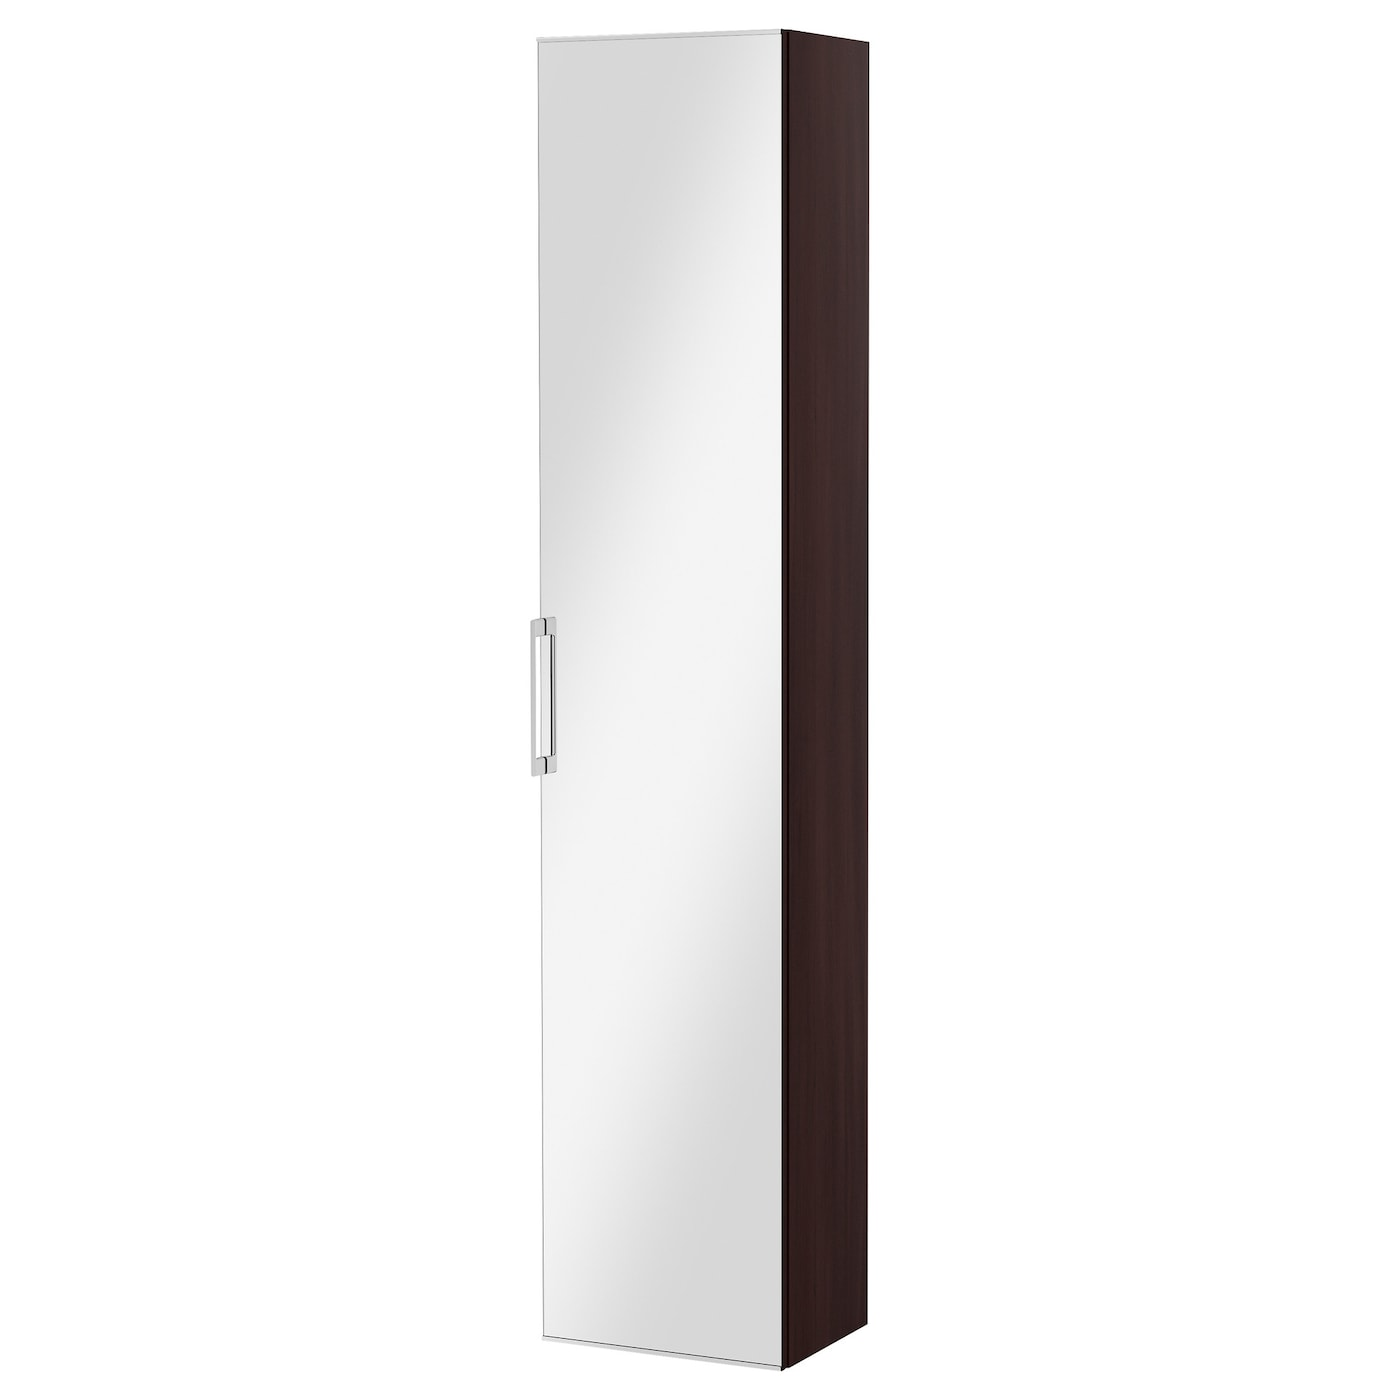 tall bathroom cabinets ikea godmorgon high cabinet with mirror door black brown 26969